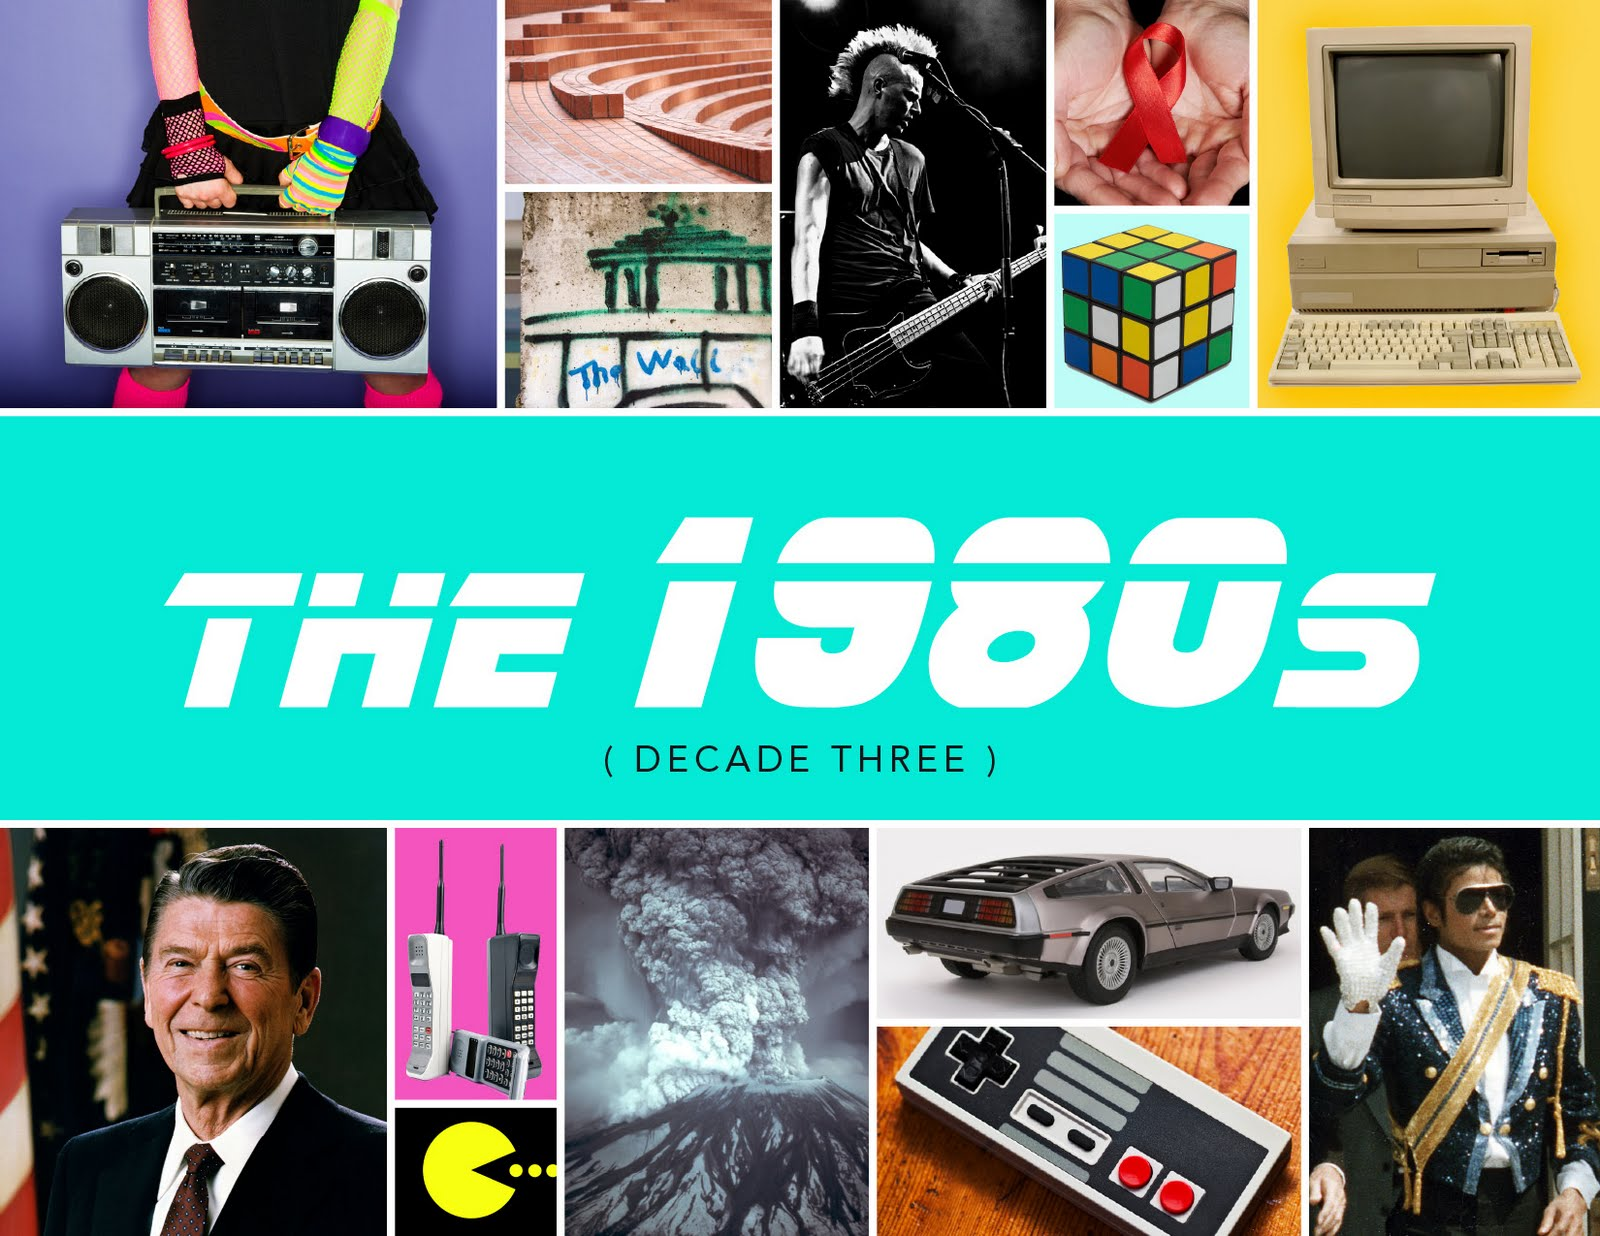 Pictures - WE ALL LOVE 80s 90s 00s